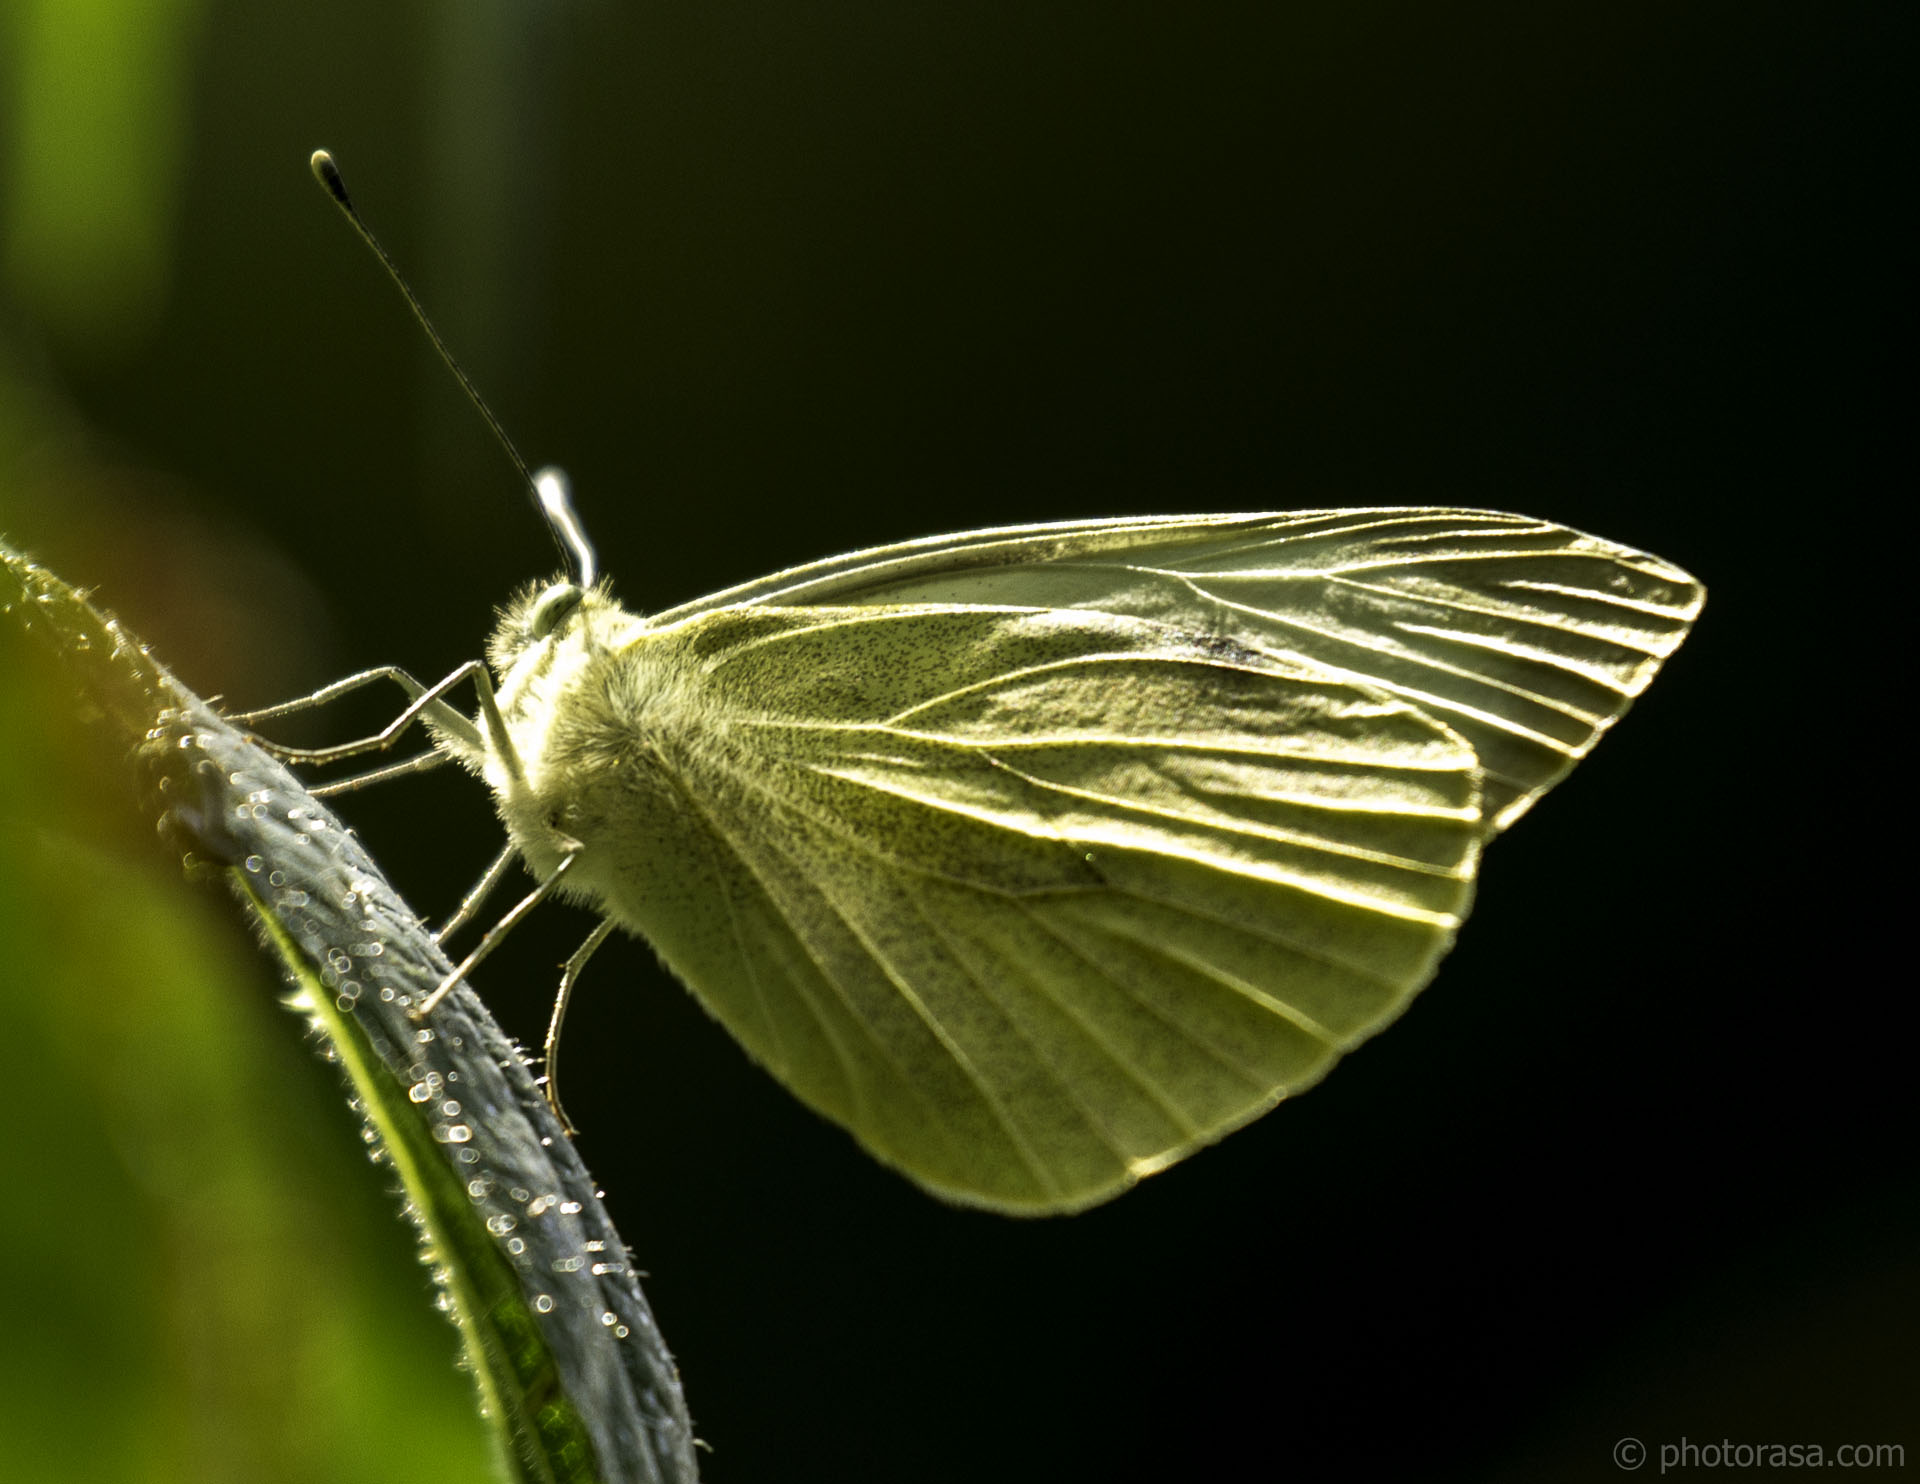 http://photorasa.com/large-white-butterfly-in-sunlight/large-white-butterfly-veins-in-sunlight/